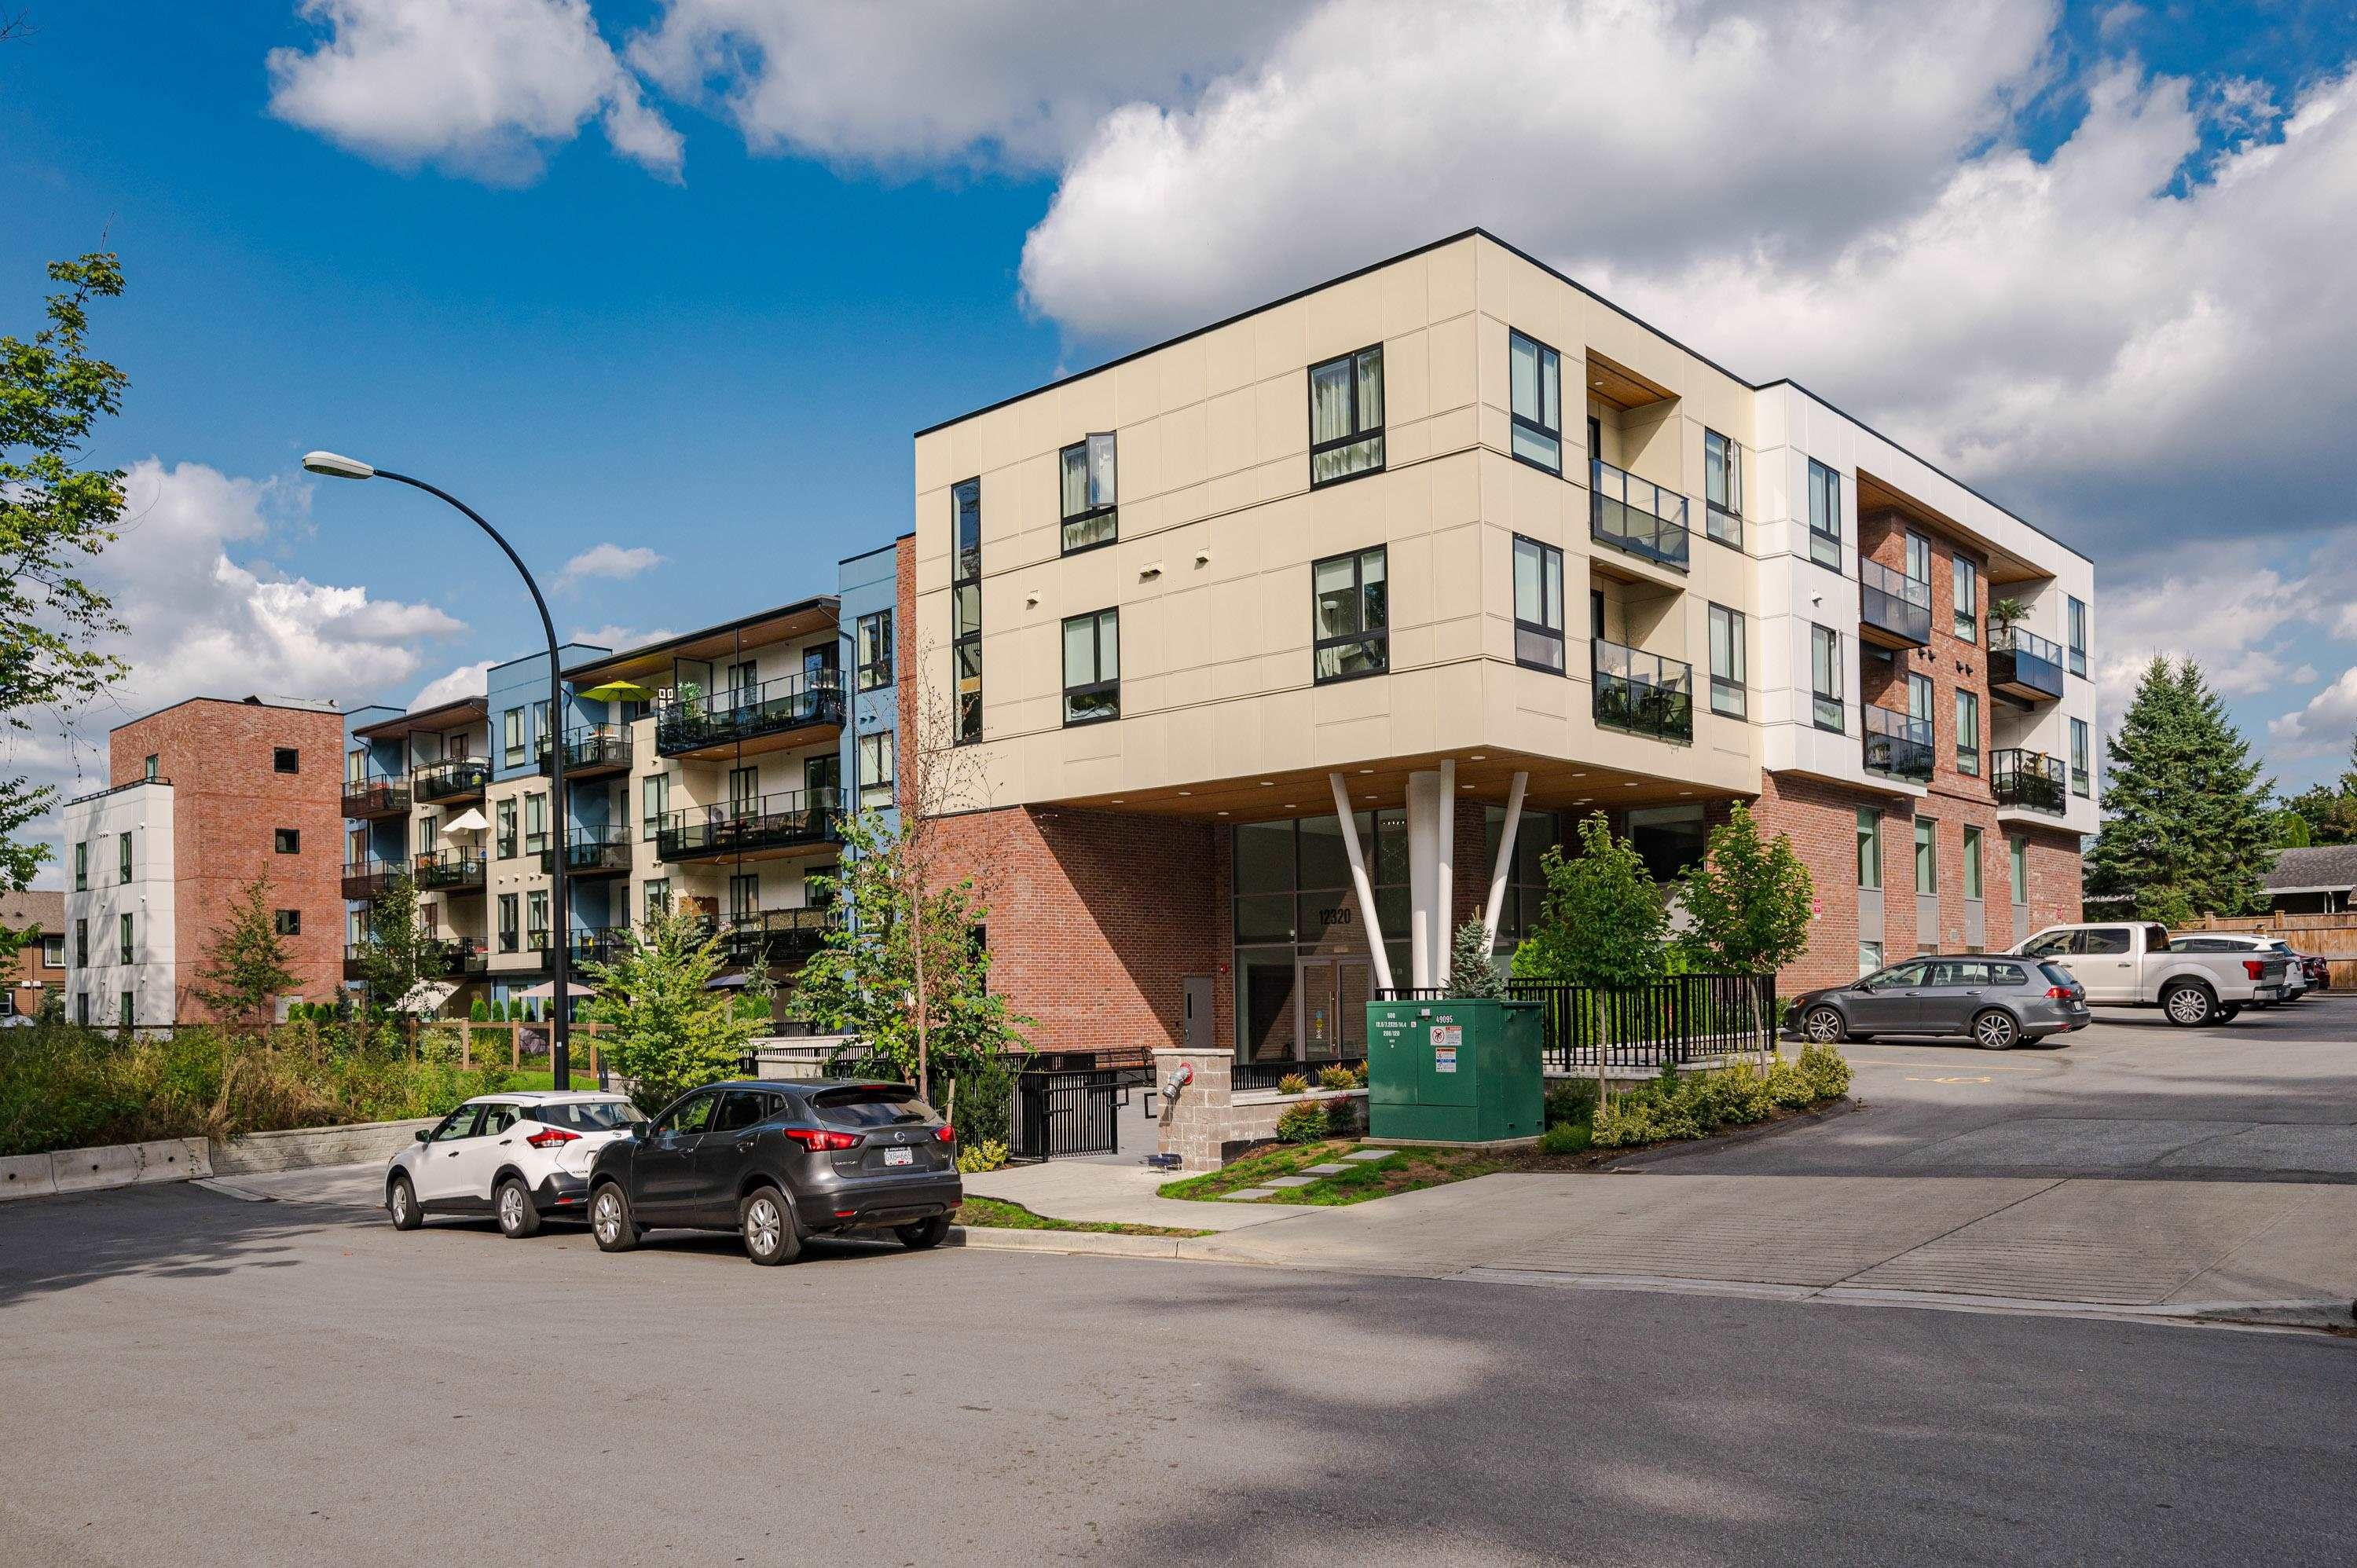 """Main Photo: PH13 12320 222 Street in Maple Ridge: West Central Condo for sale in """"The 222 Phase 2"""" : MLS®# R2617229"""